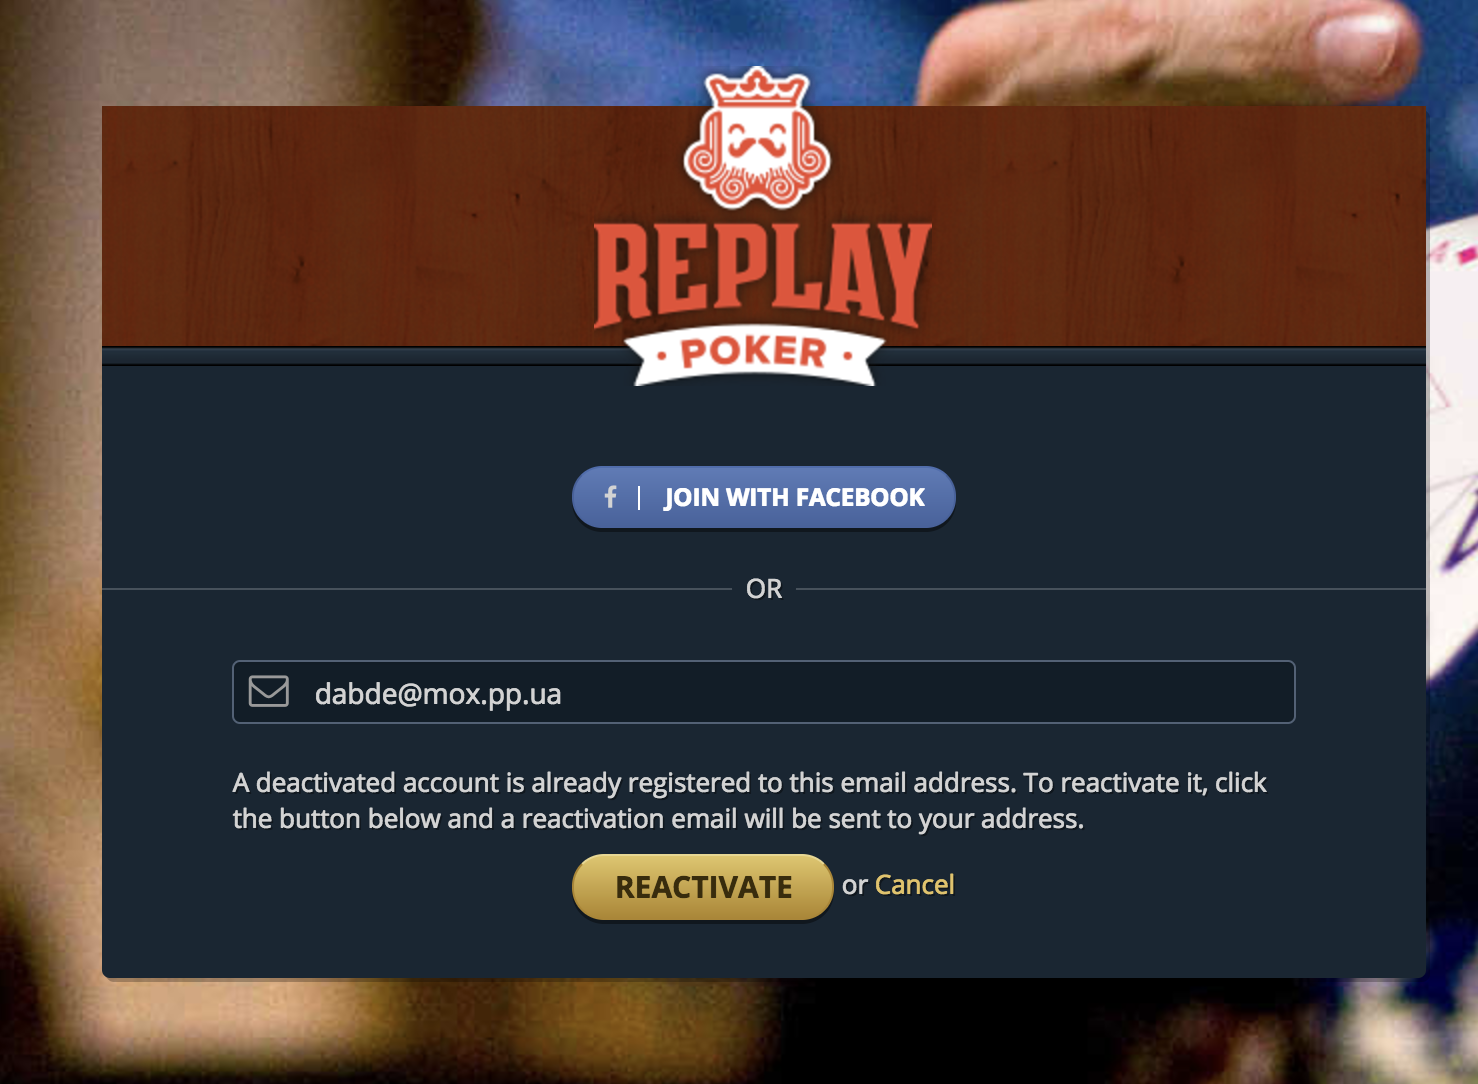 Replaypoker